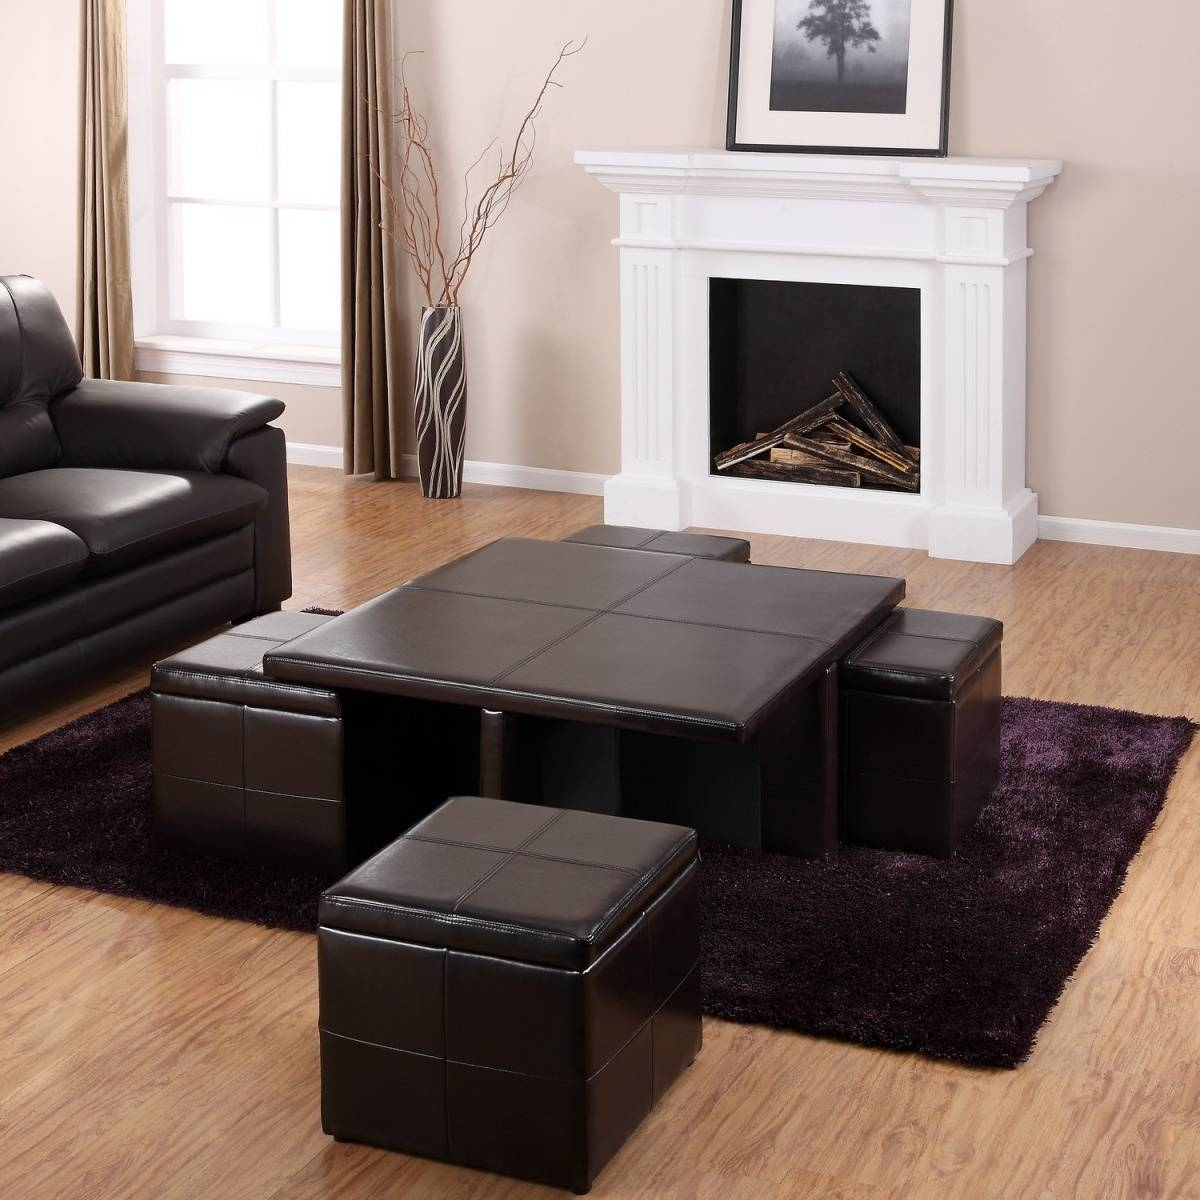 Coffee Table With Ottoman Storage regarding Brown Leather Ottoman Coffee Tables With Storages (Image 13 of 30)